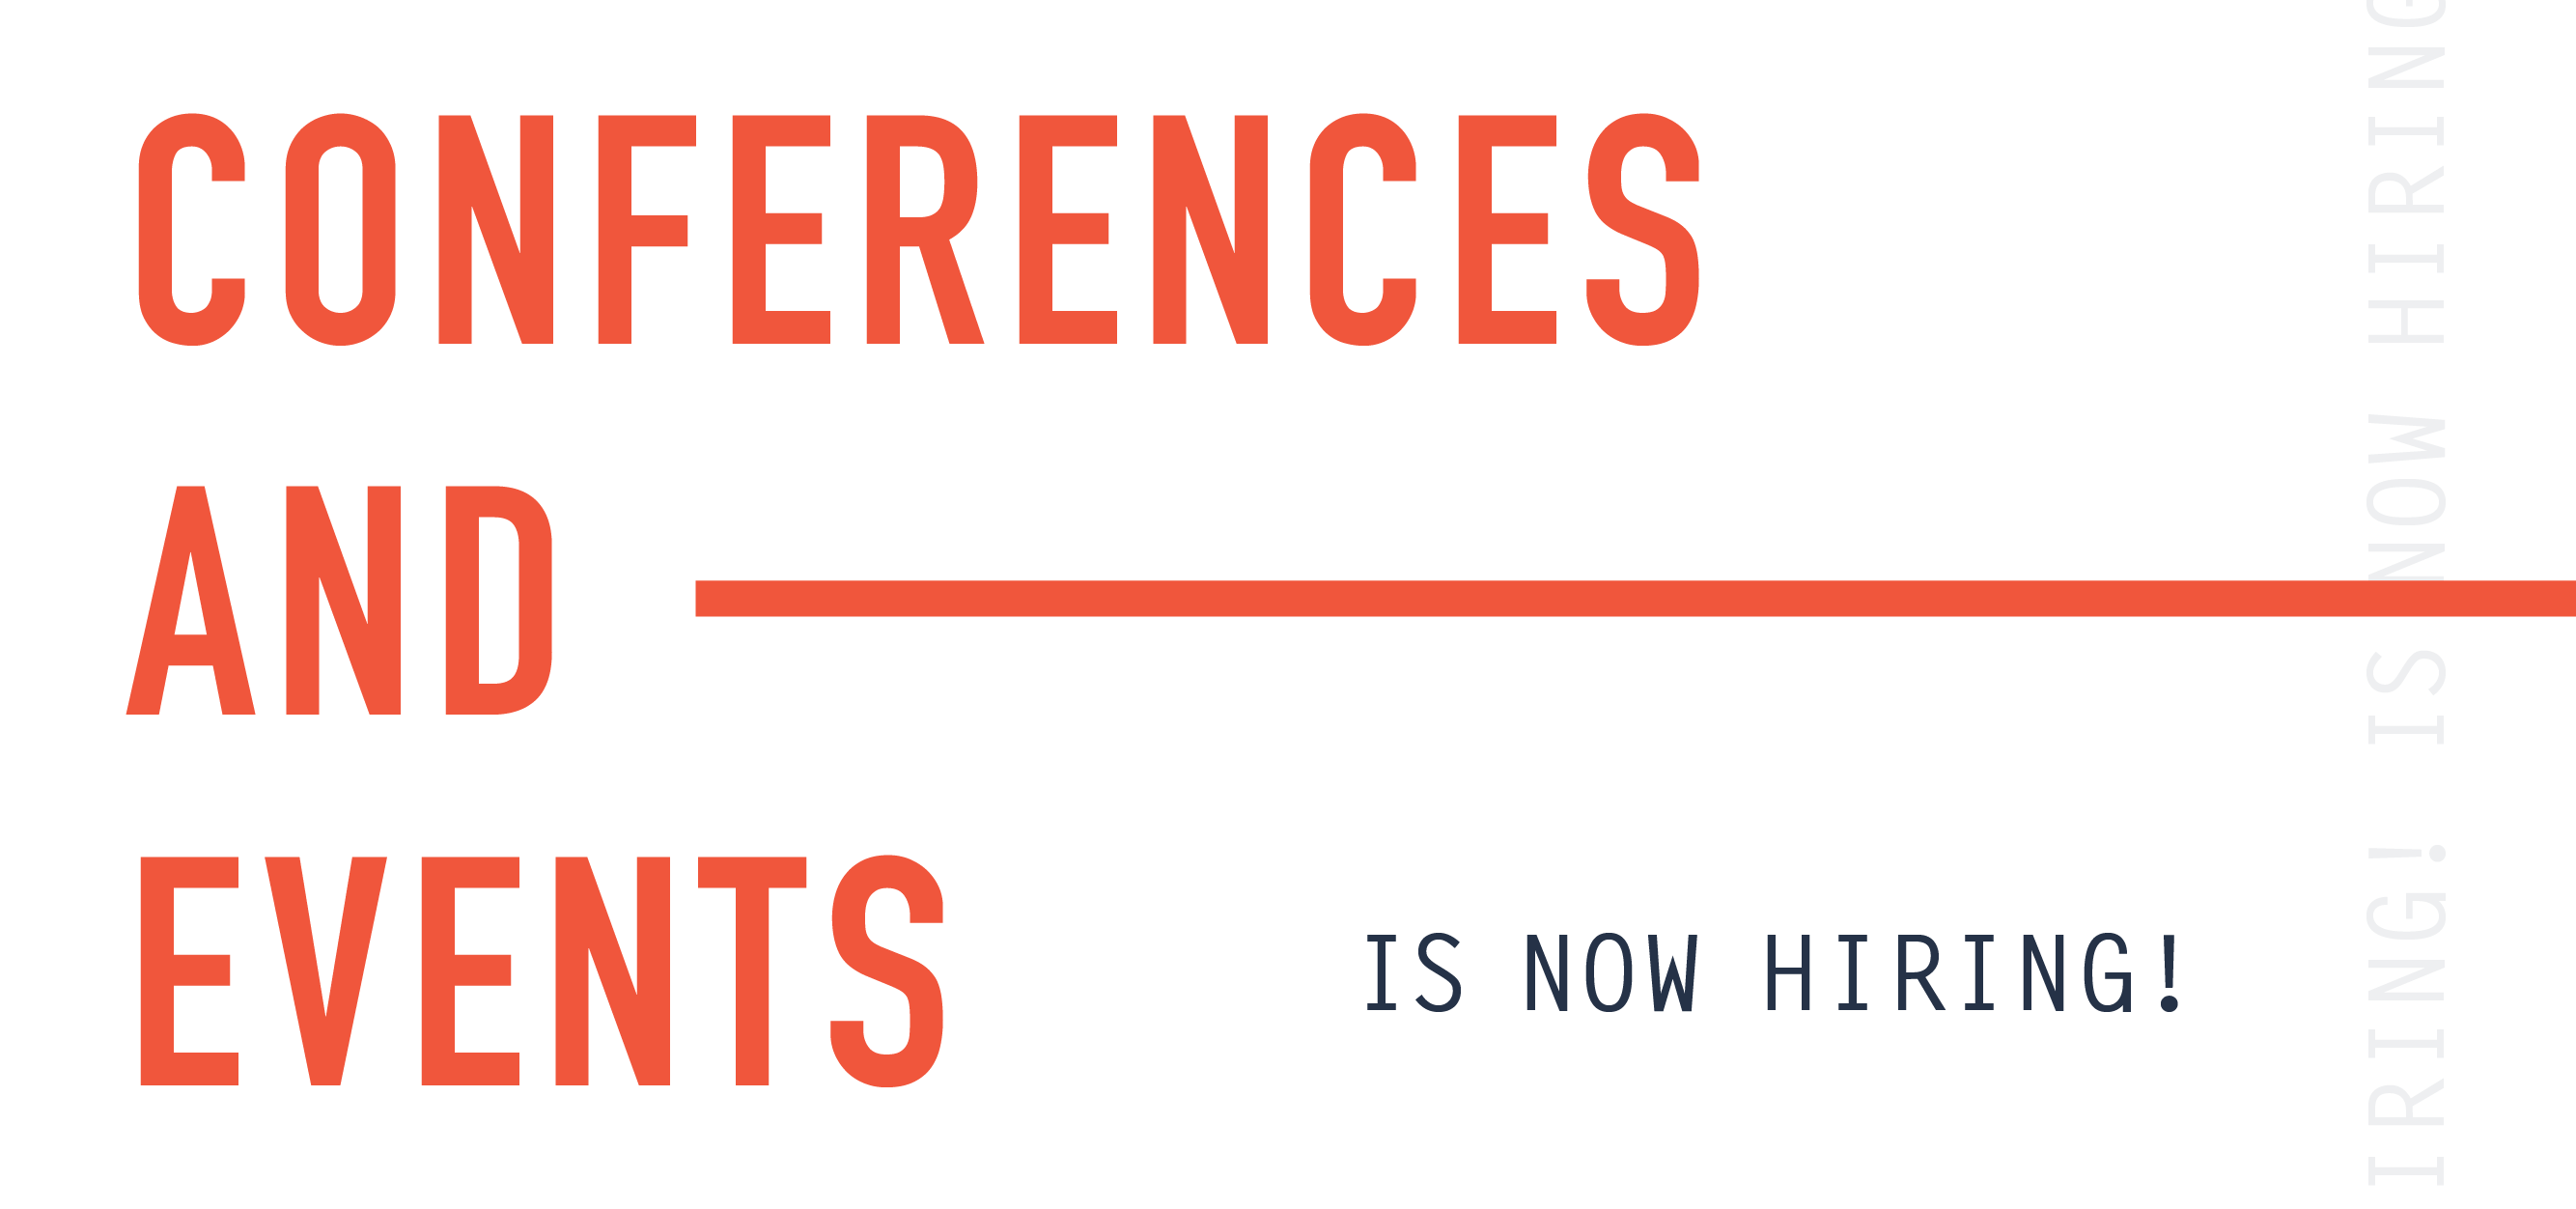 Conferences and Events is Hiring